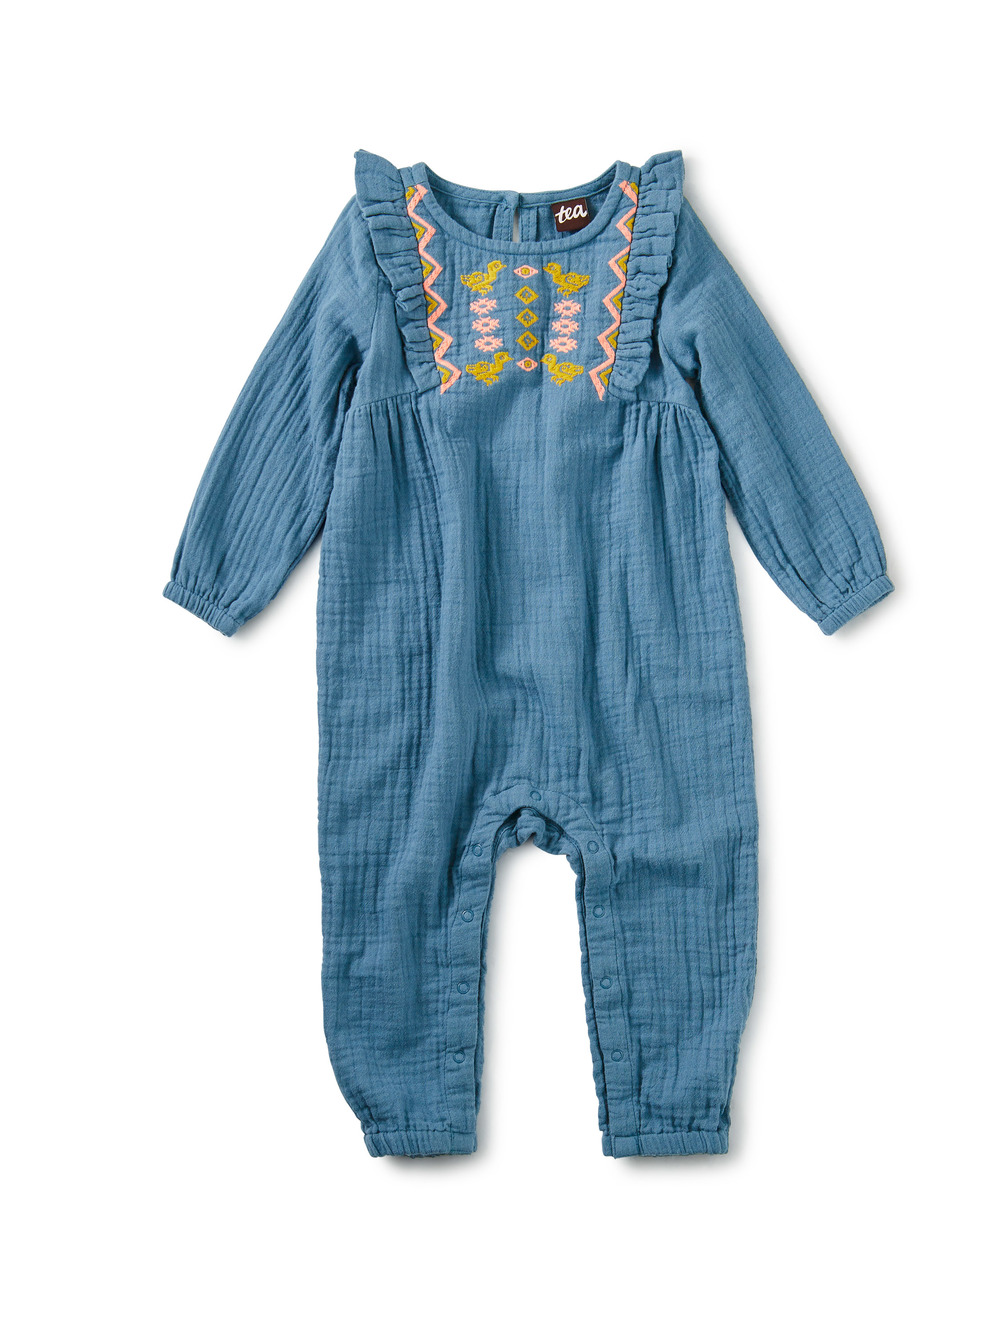 Embroidered Ruffle Baby Romper